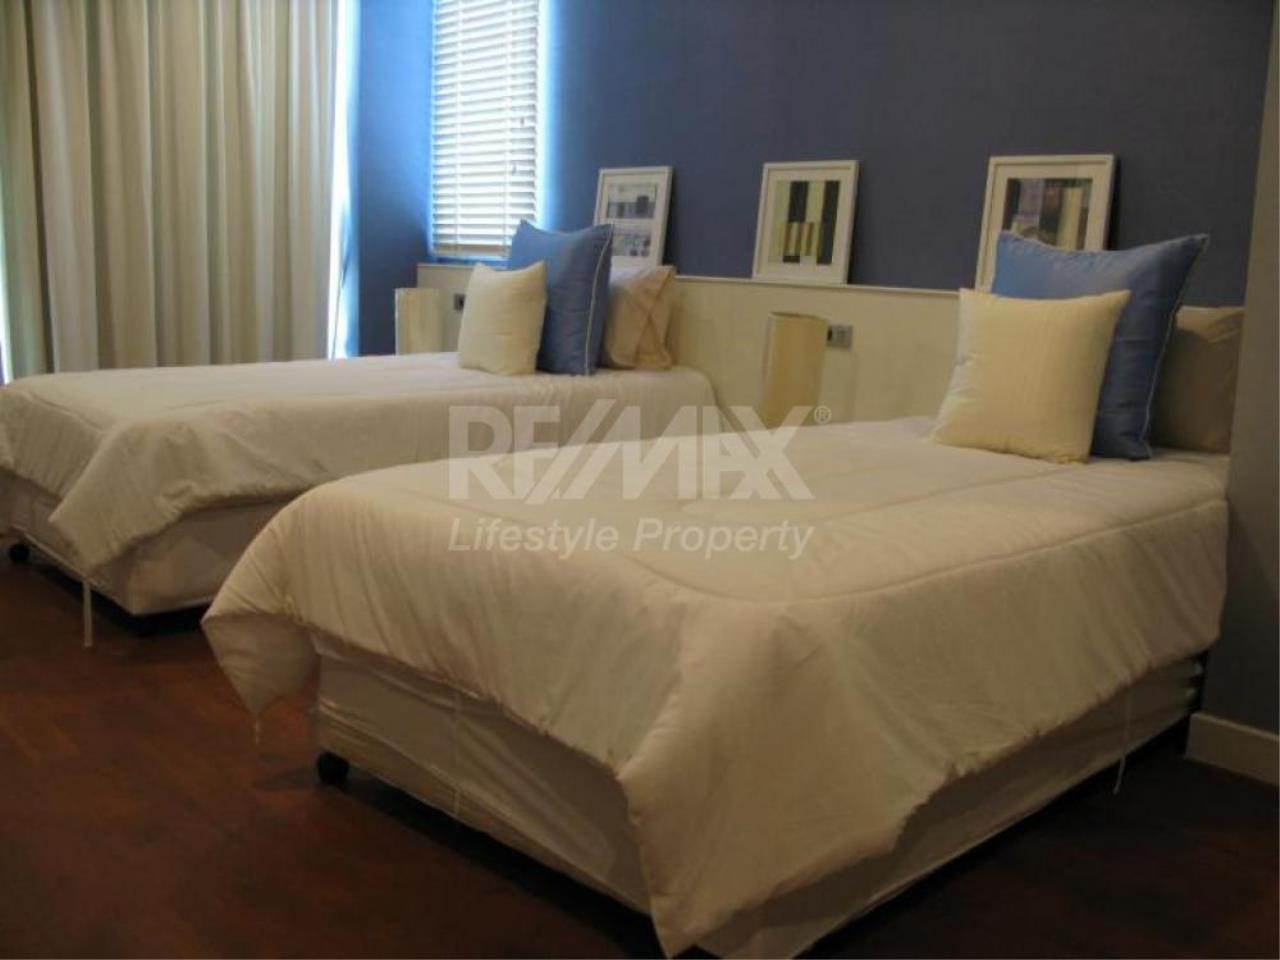 RE/MAX LifeStyle Property Agency's Baan Siri Silom 6